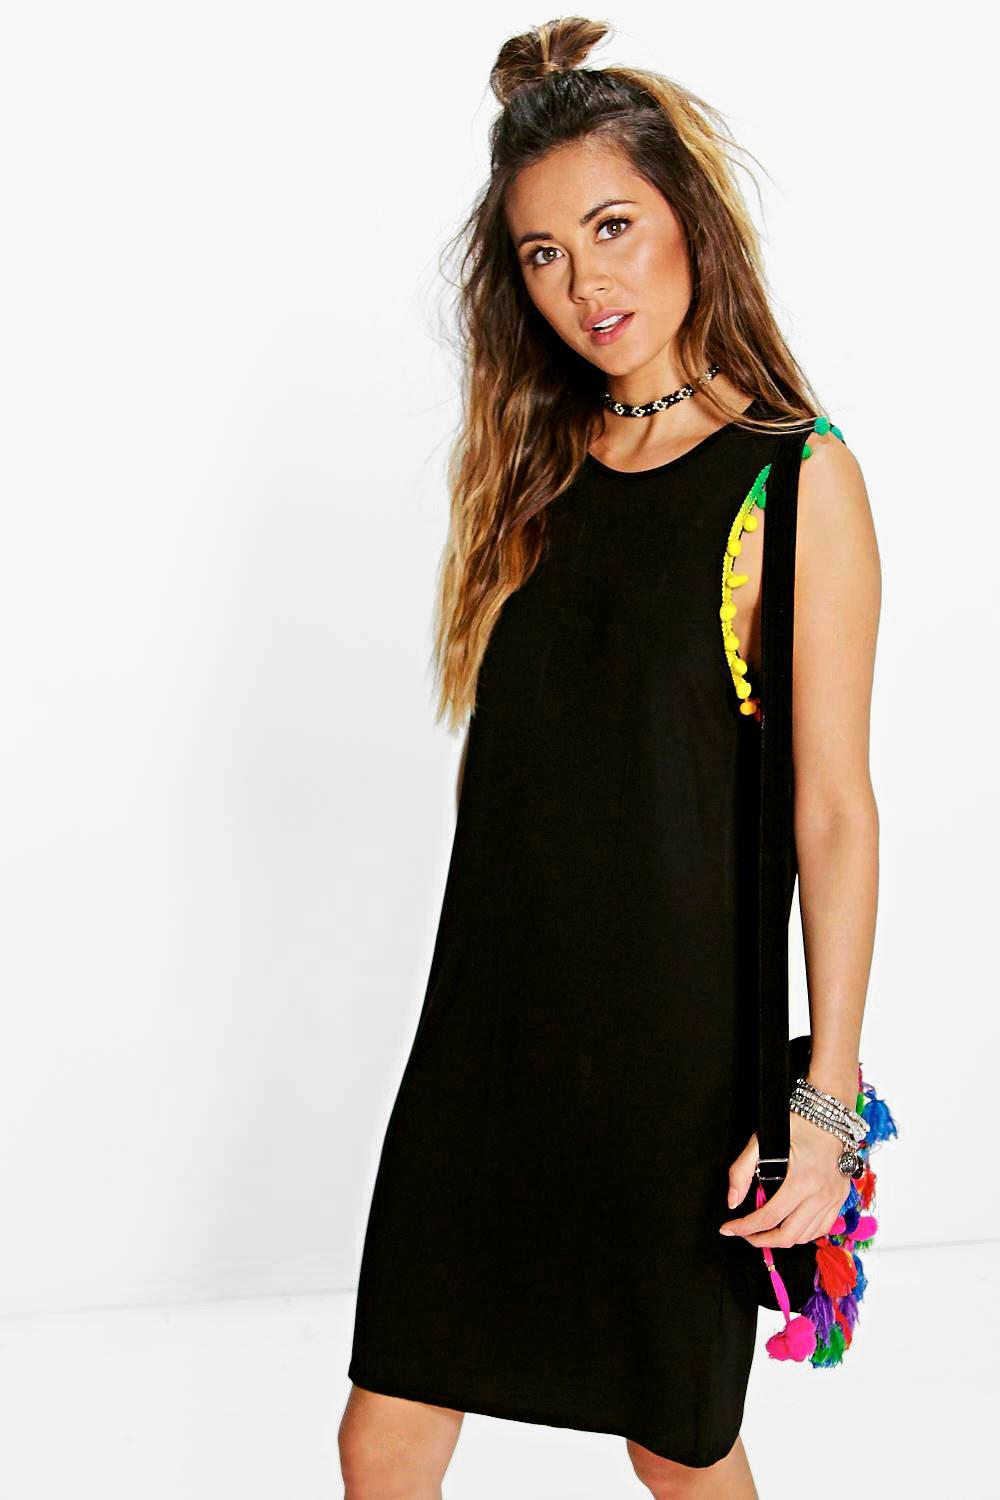 Black t shirt dress ebay - Boohoo Womens Karie Multi Coloured Pom Pom T